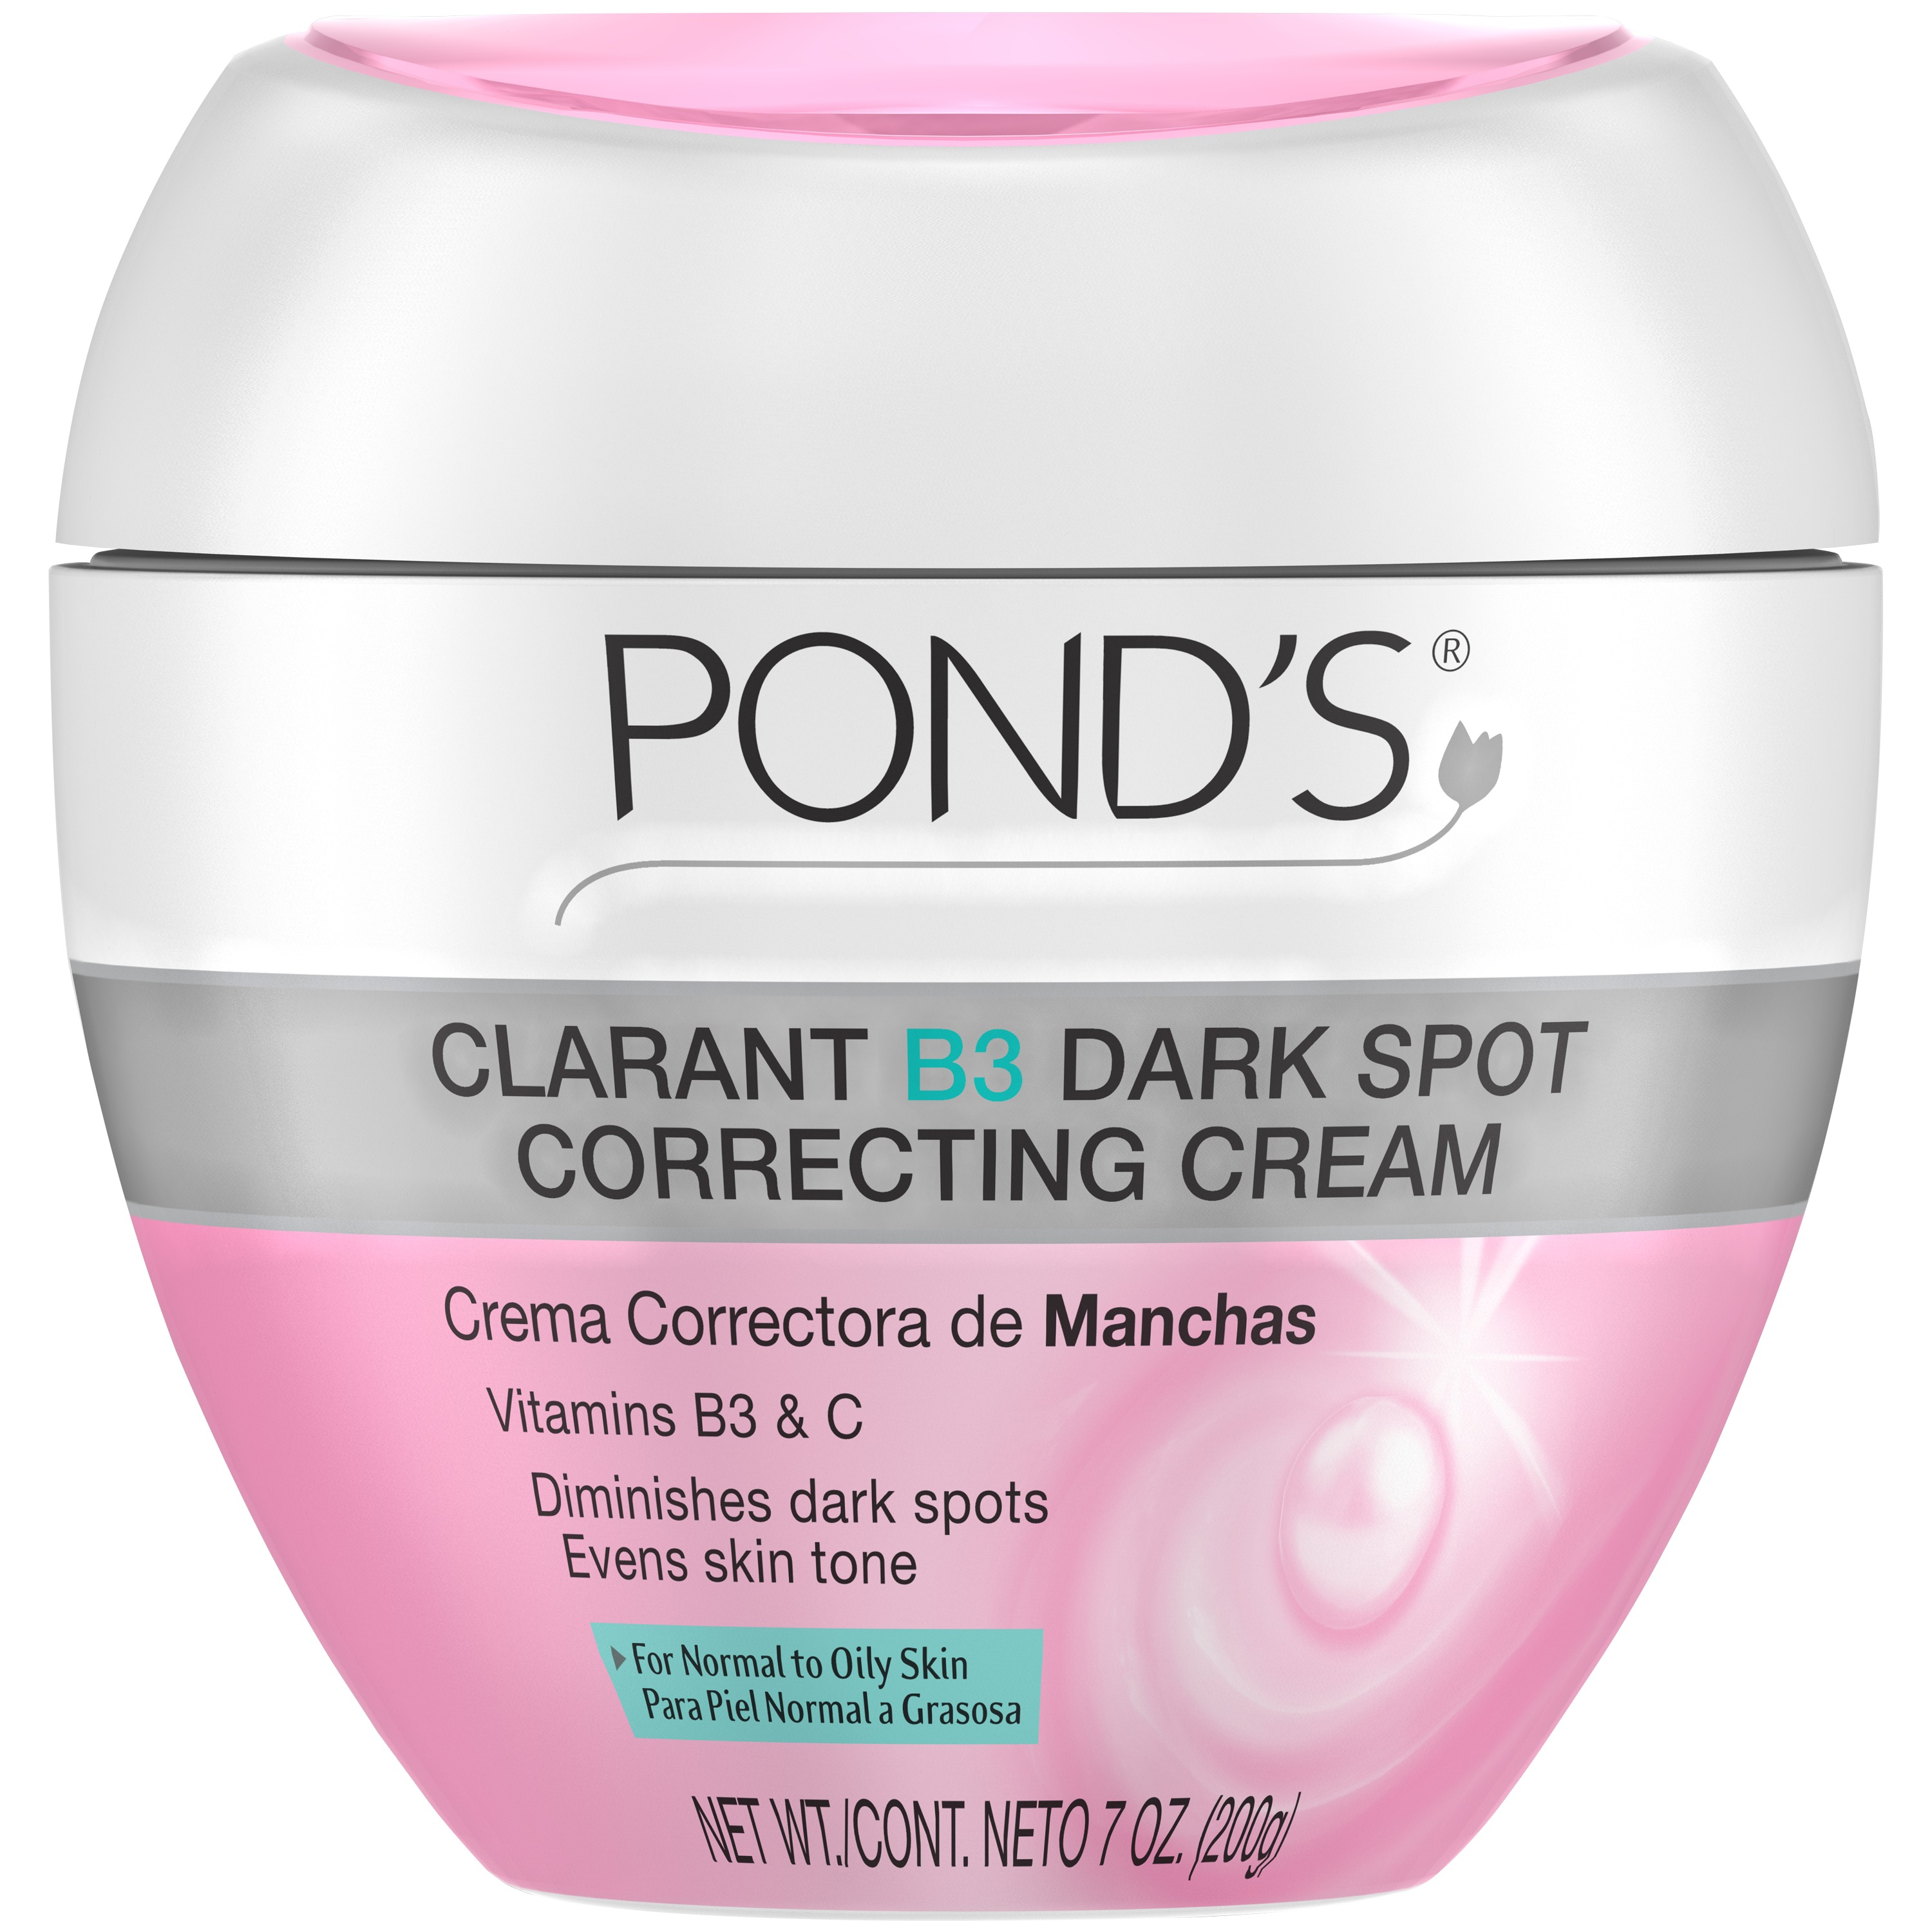 ponds for oily skin